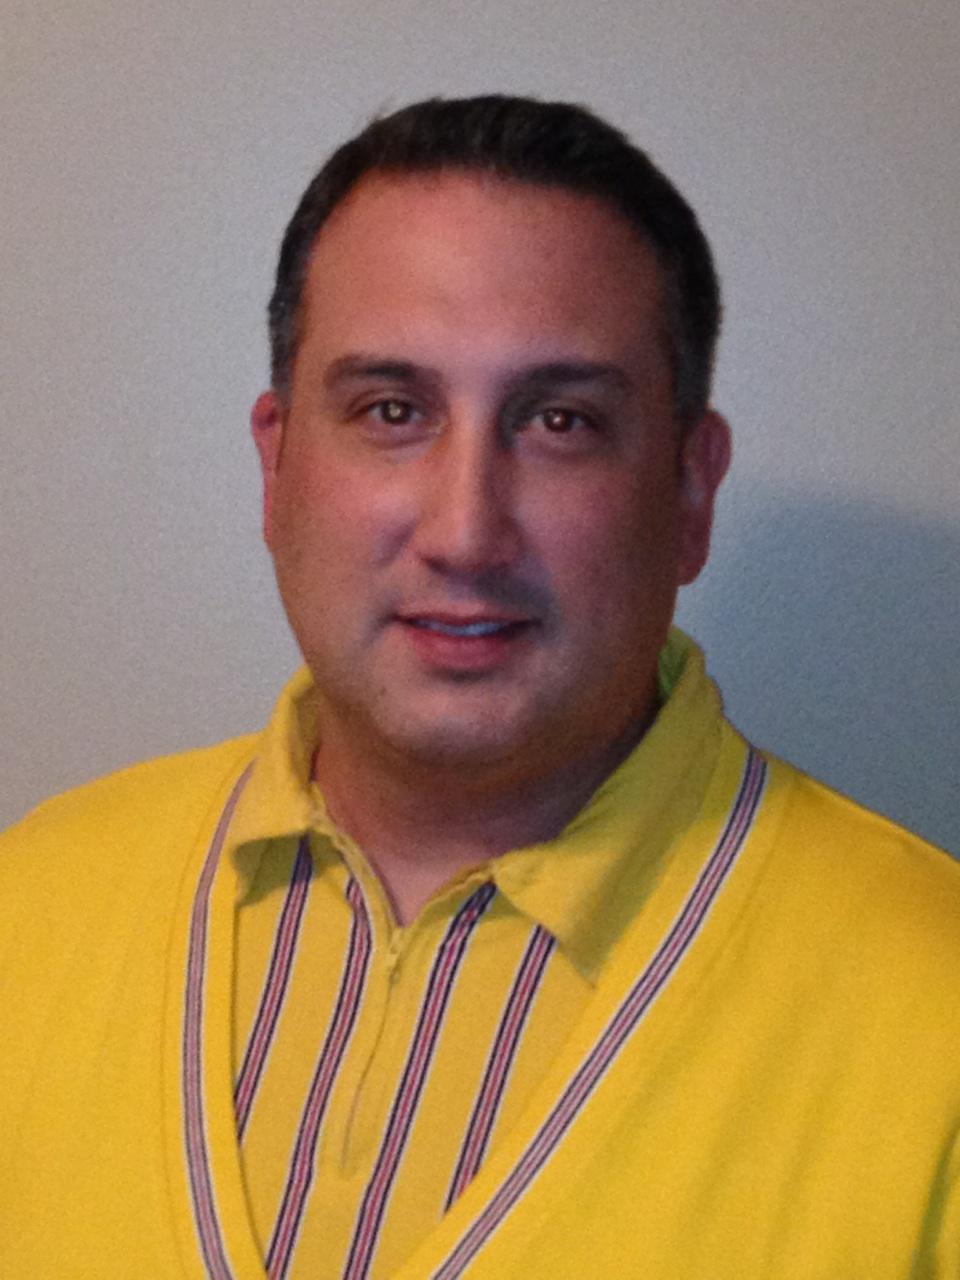 IKEA, the world's leading home furnishings retailer, today announced the appointment of Rob Parsons as manager of its future Kansas City-area store opening Fall 2014 in Merriam, KS. (Photo: Business Wire)